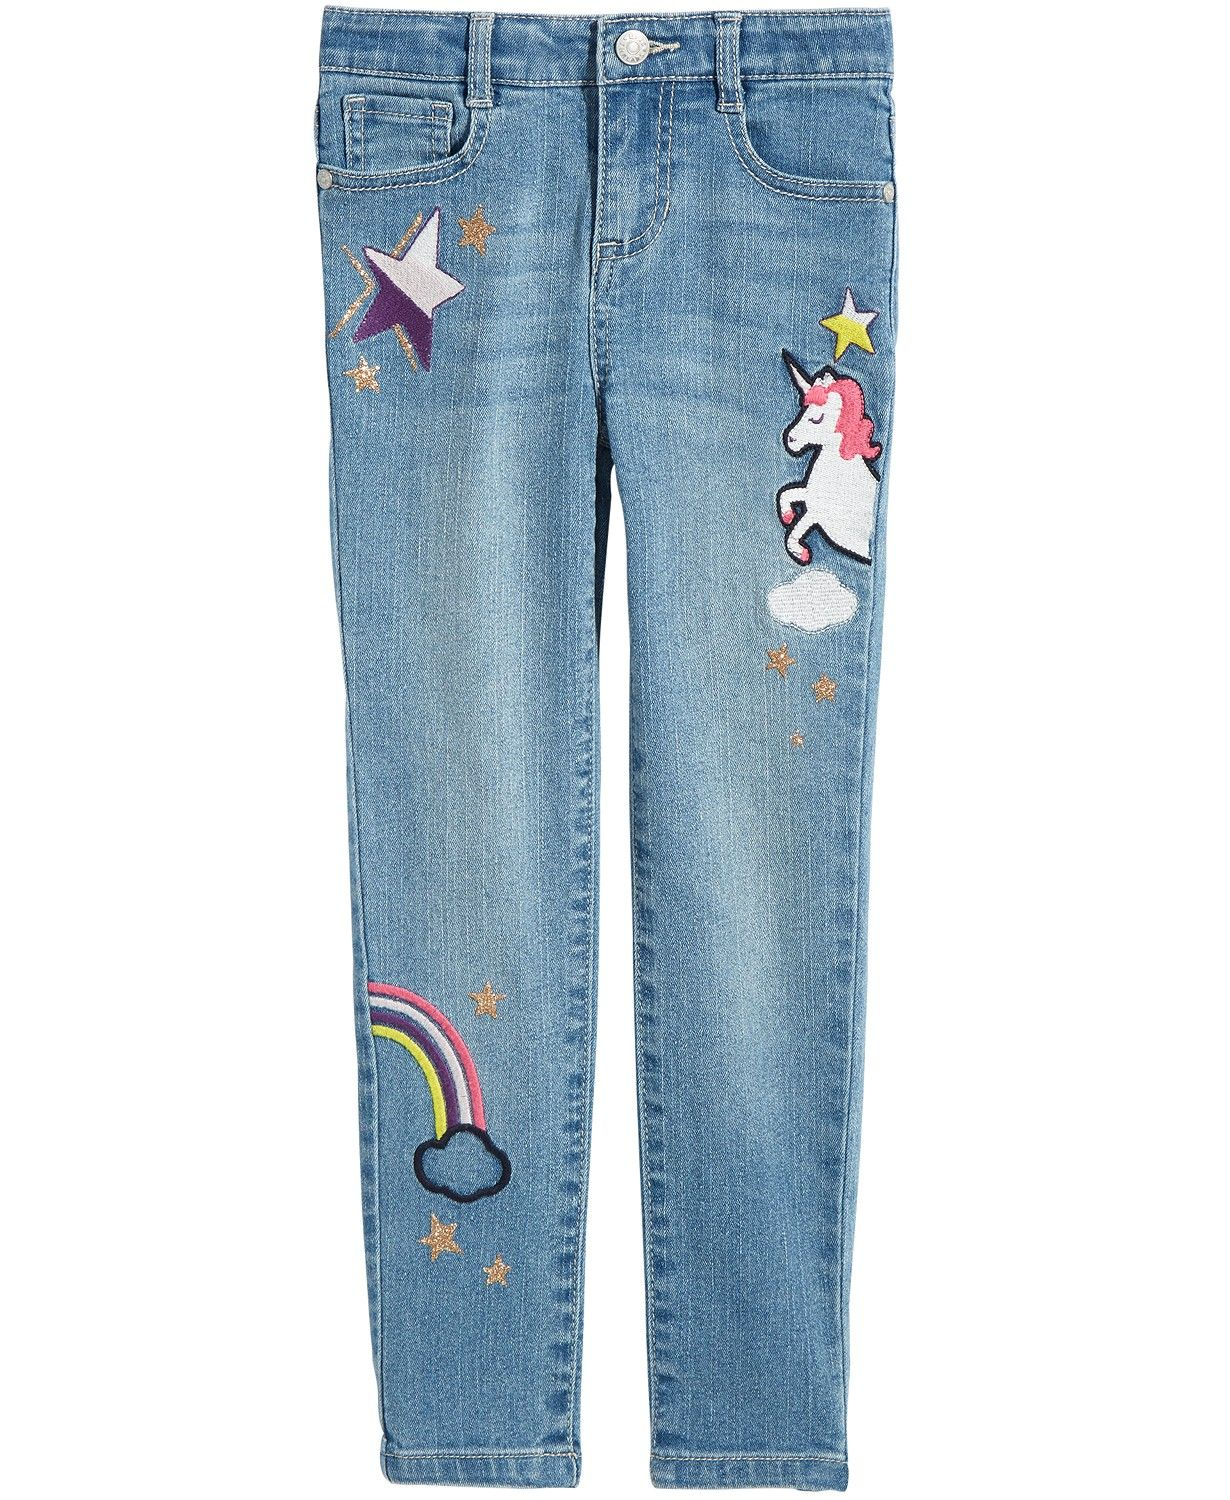 7 Gymboree Girls Clothes Size 5 8 Elastic Waist Faded Blue Kids Jeans Jeggings